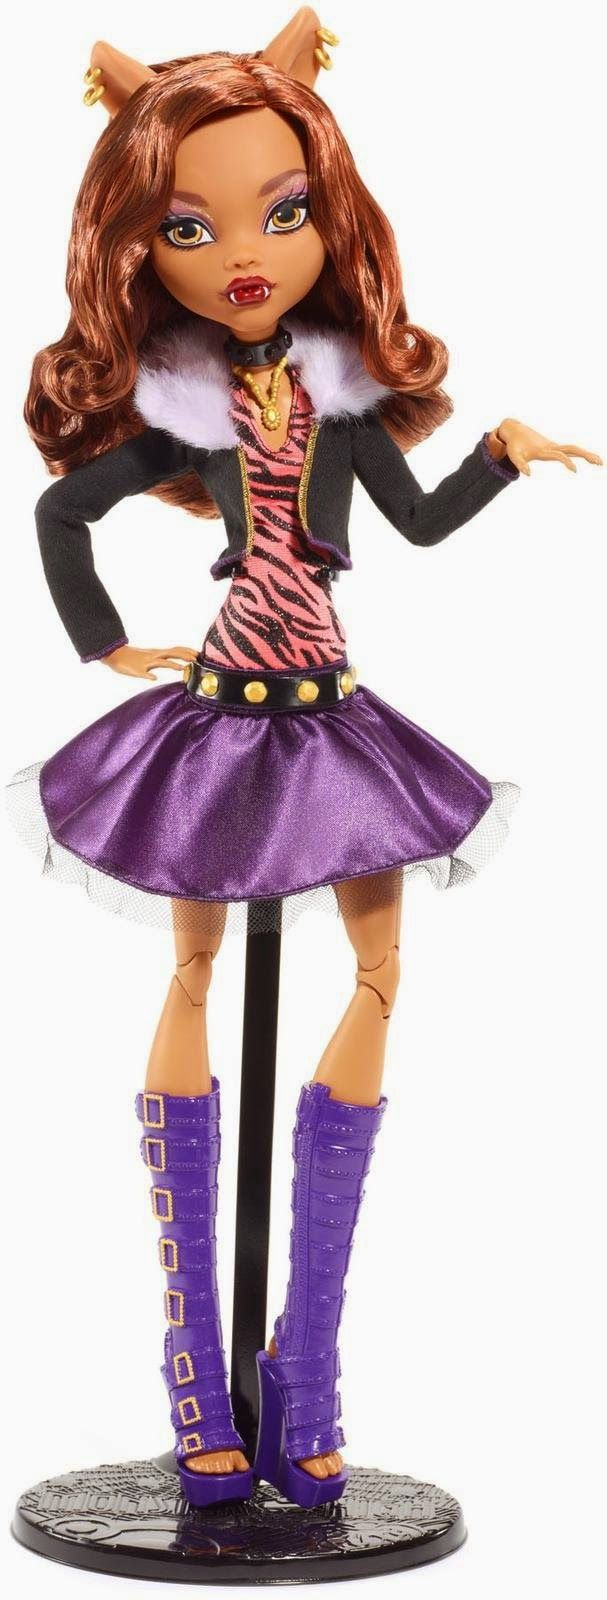 all about monster high clawdeen wolf draculaura and frankie stein frightfully tall ghouls - Clawdeen Wolf Halloween Costume